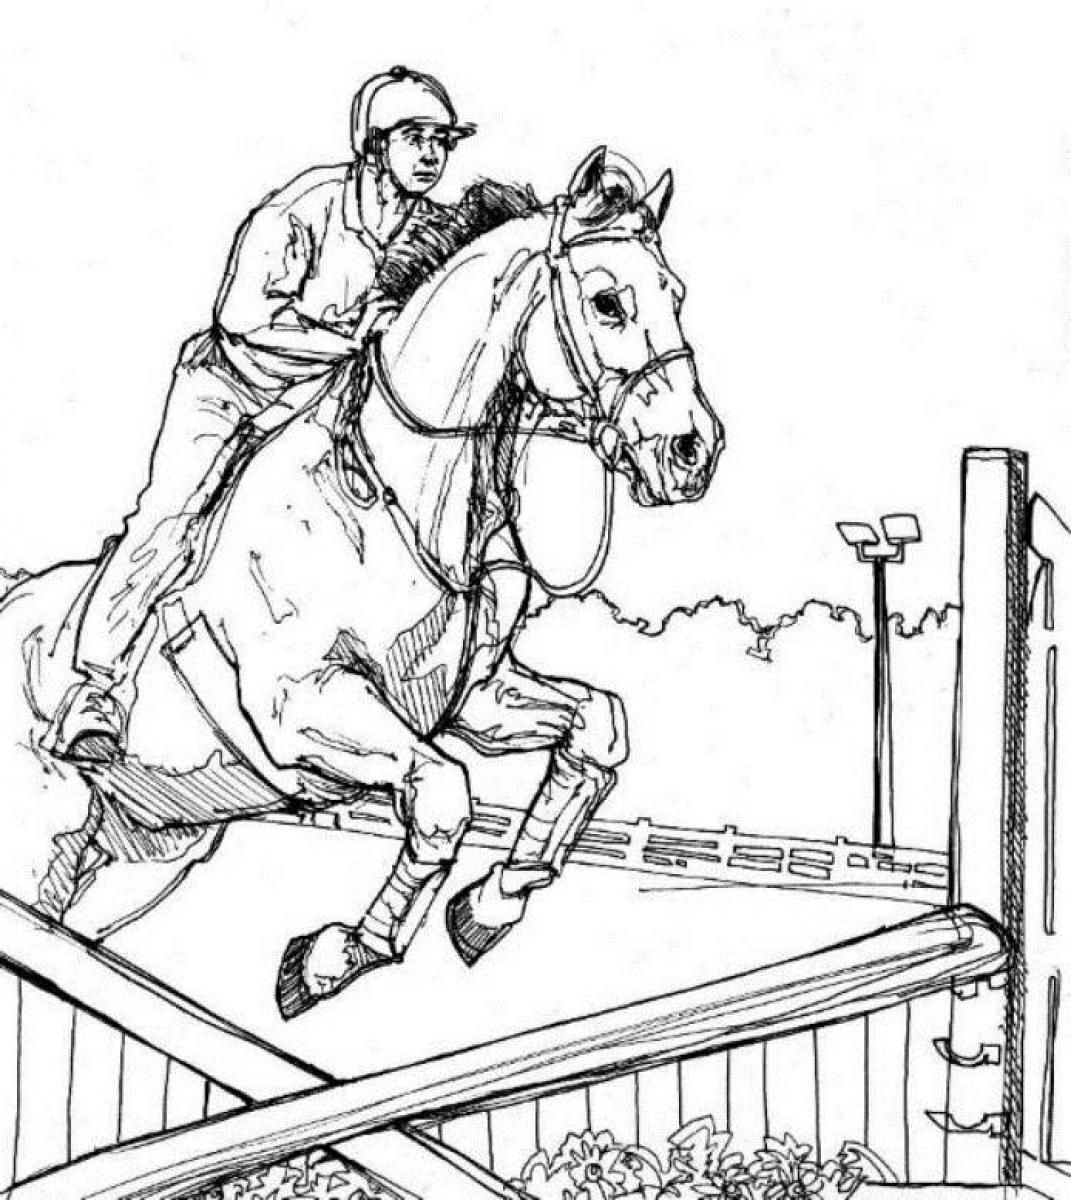 Coloring Rocks Horse Coloring Pages Horse Coloring Animal Coloring Pages [ 1200 x 1071 Pixel ]